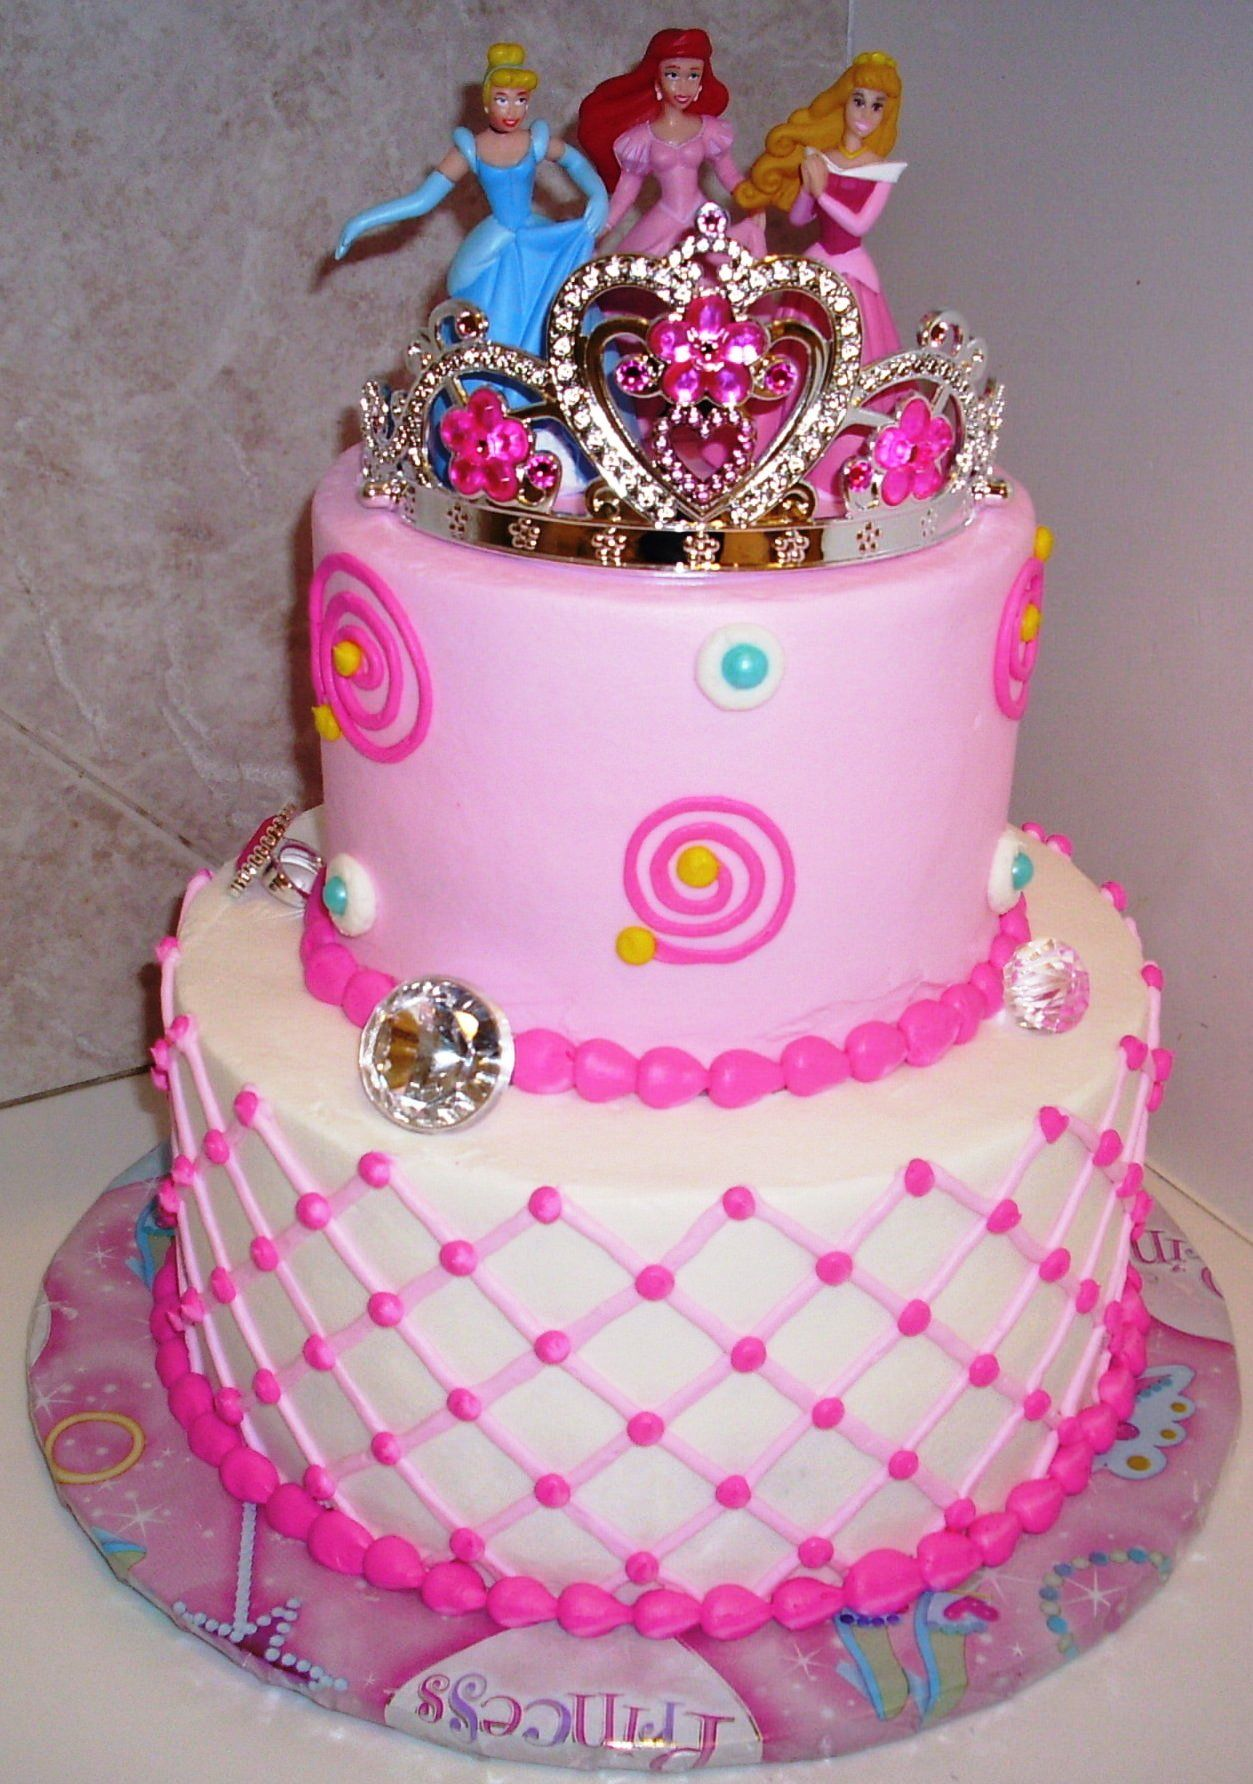 2 Tier Cake Disney Princess Pink Baby Google Search